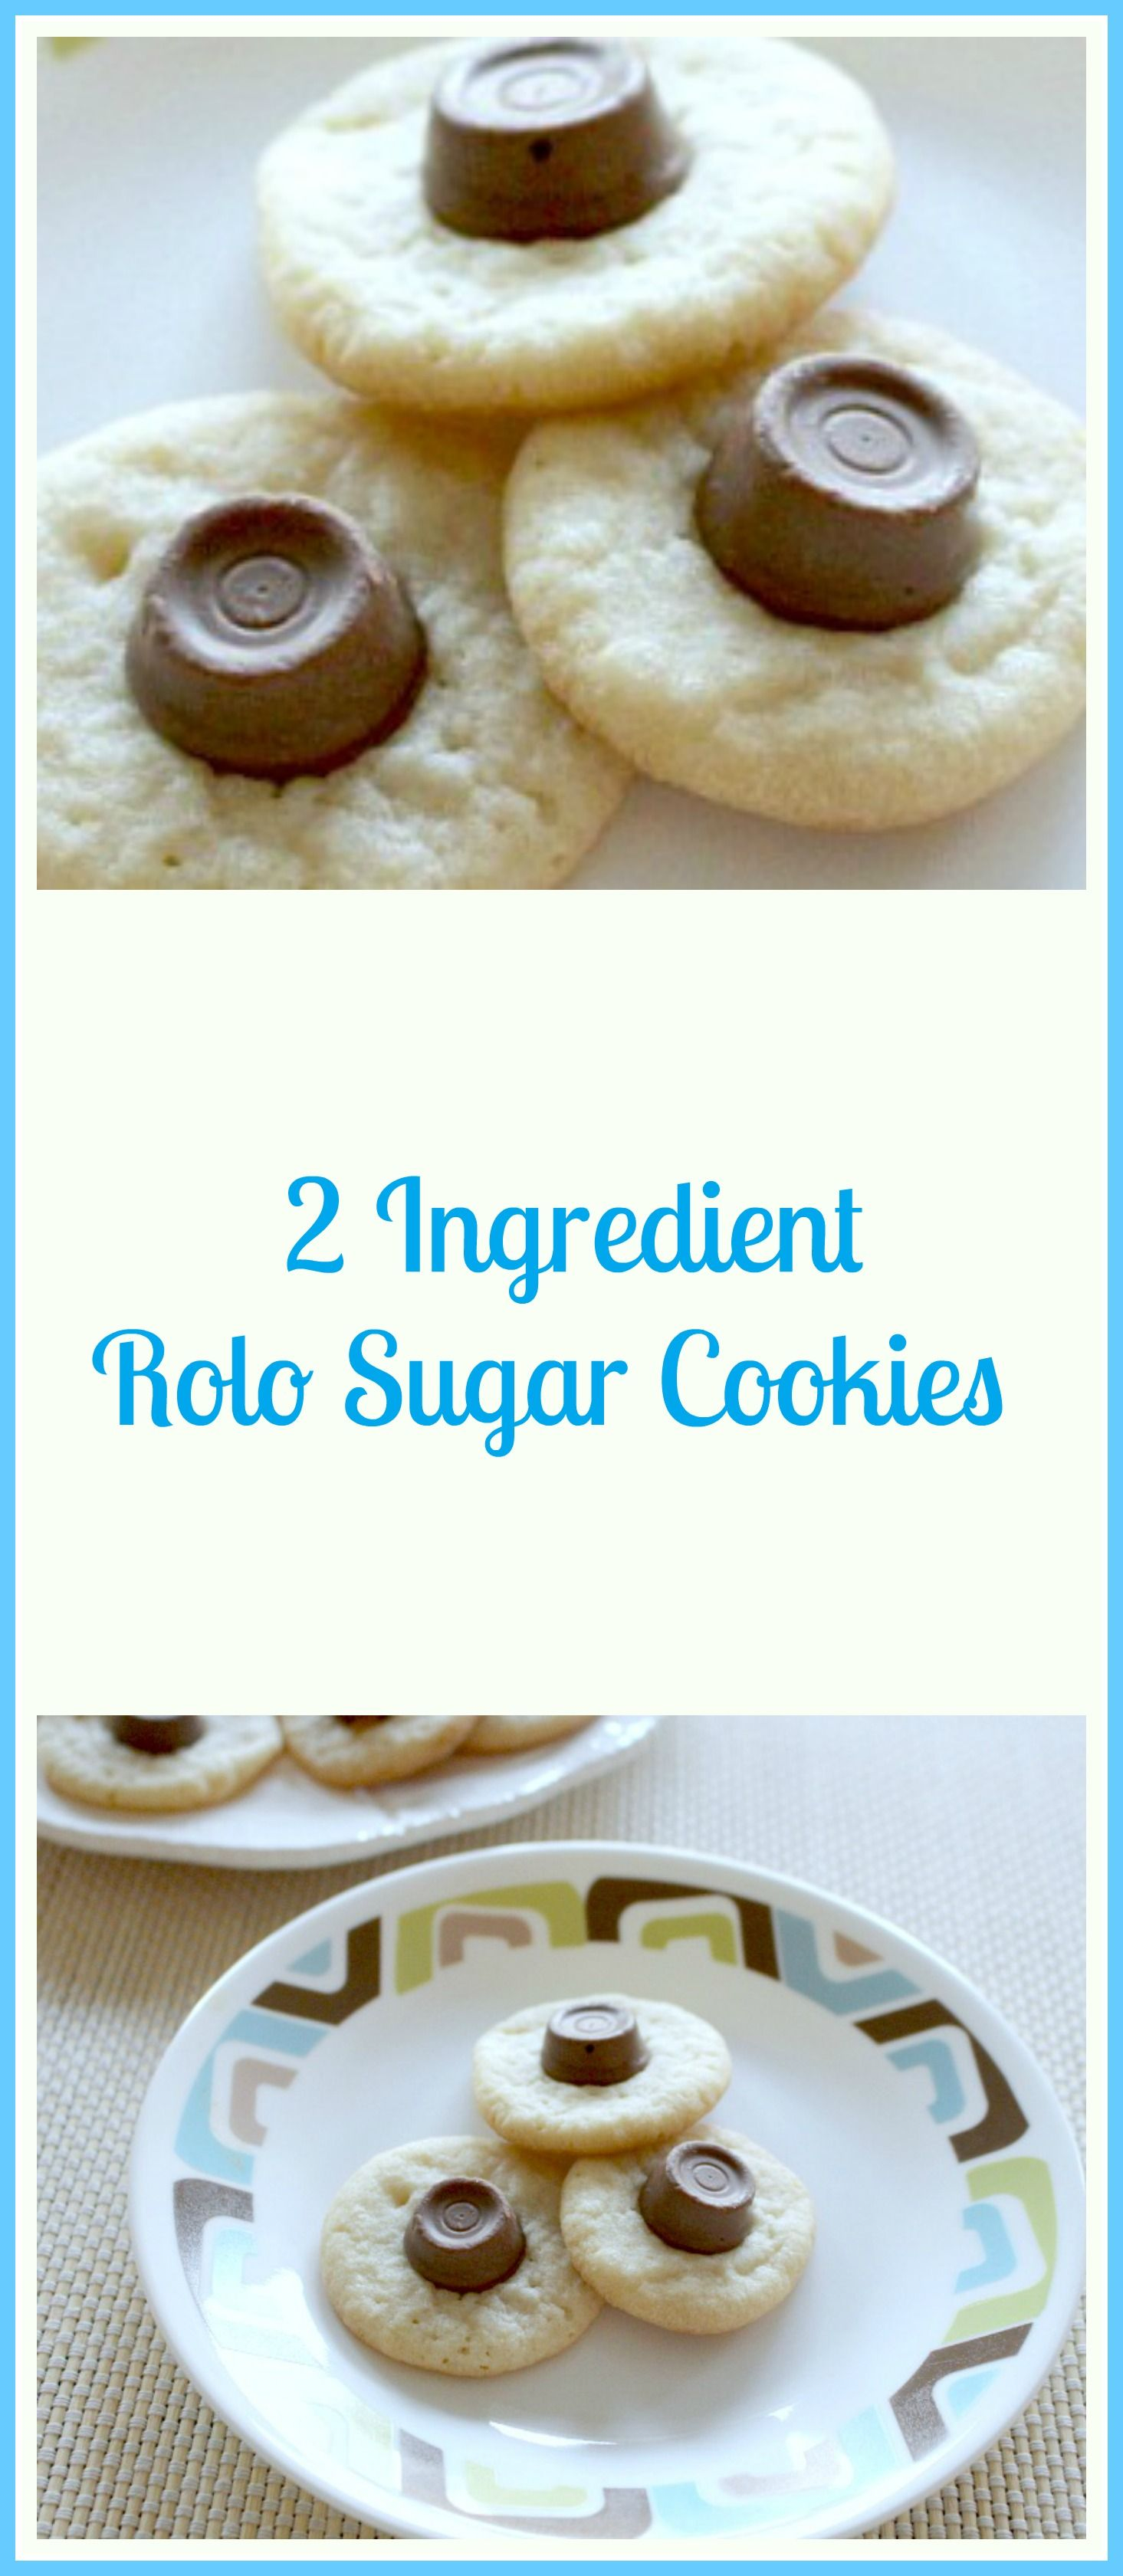 2 Ingredient Rolo Sugar Cookies  Pams Daily Dish